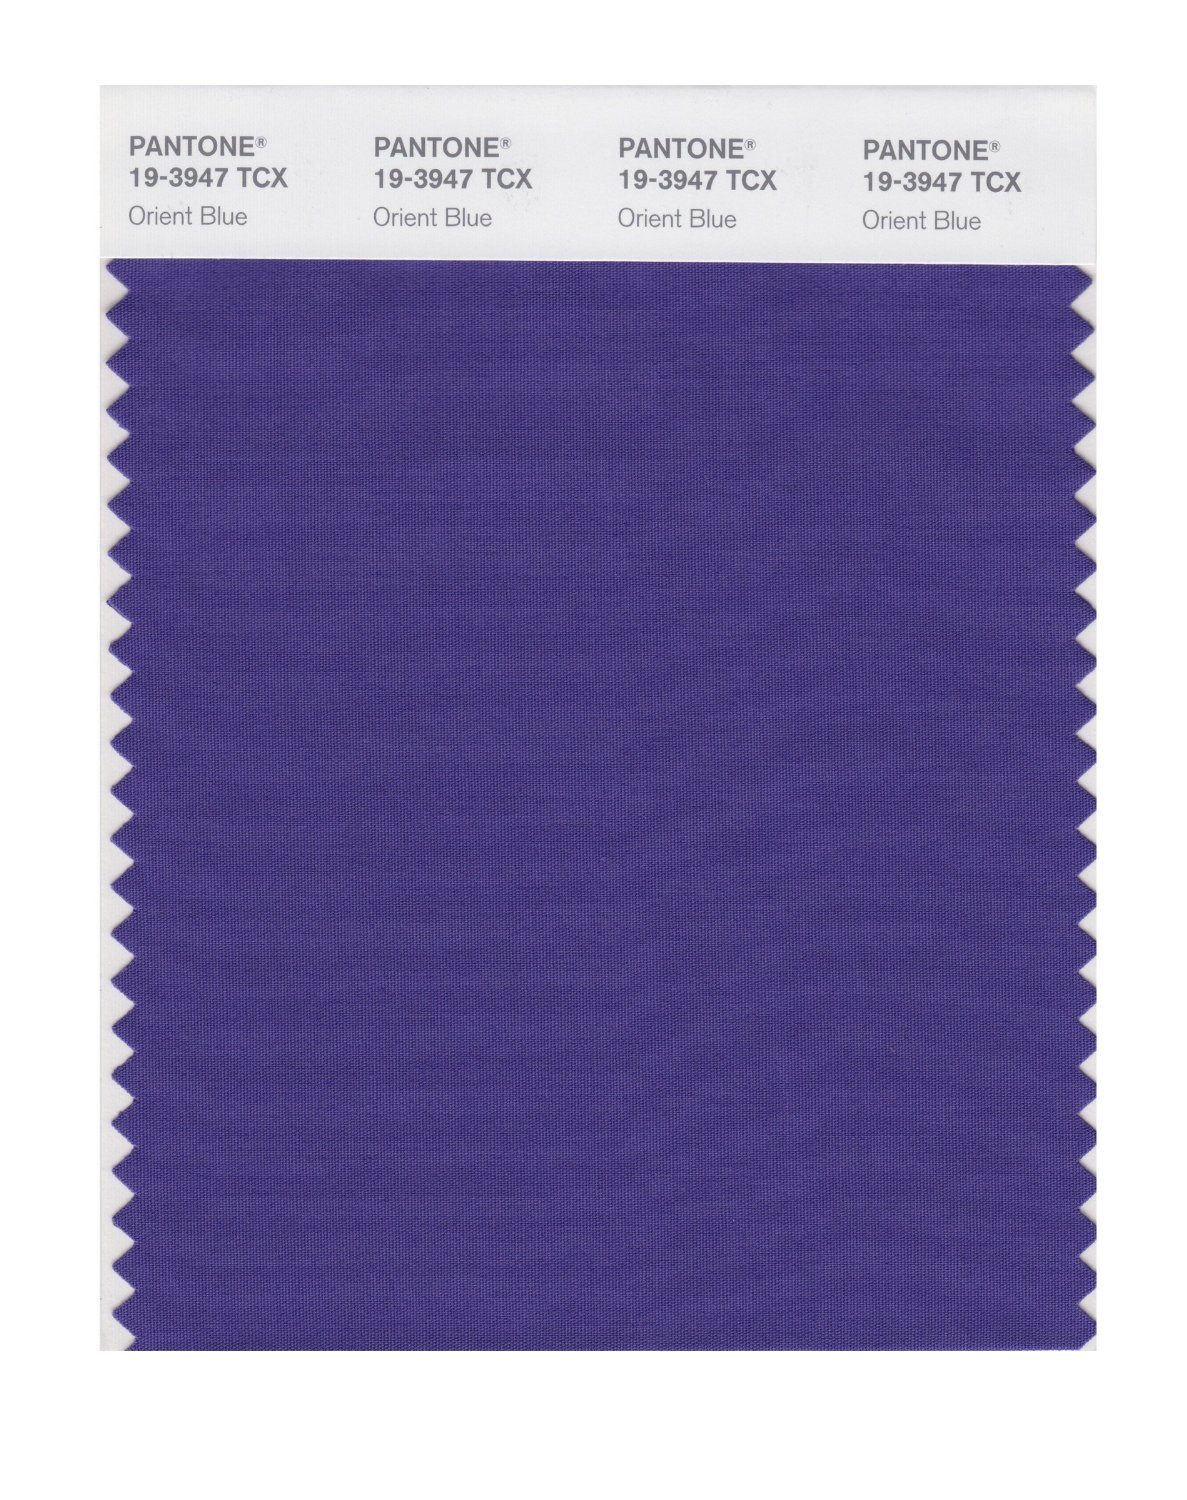 Pantone Smart Swatch 19-3947 Orient Blue